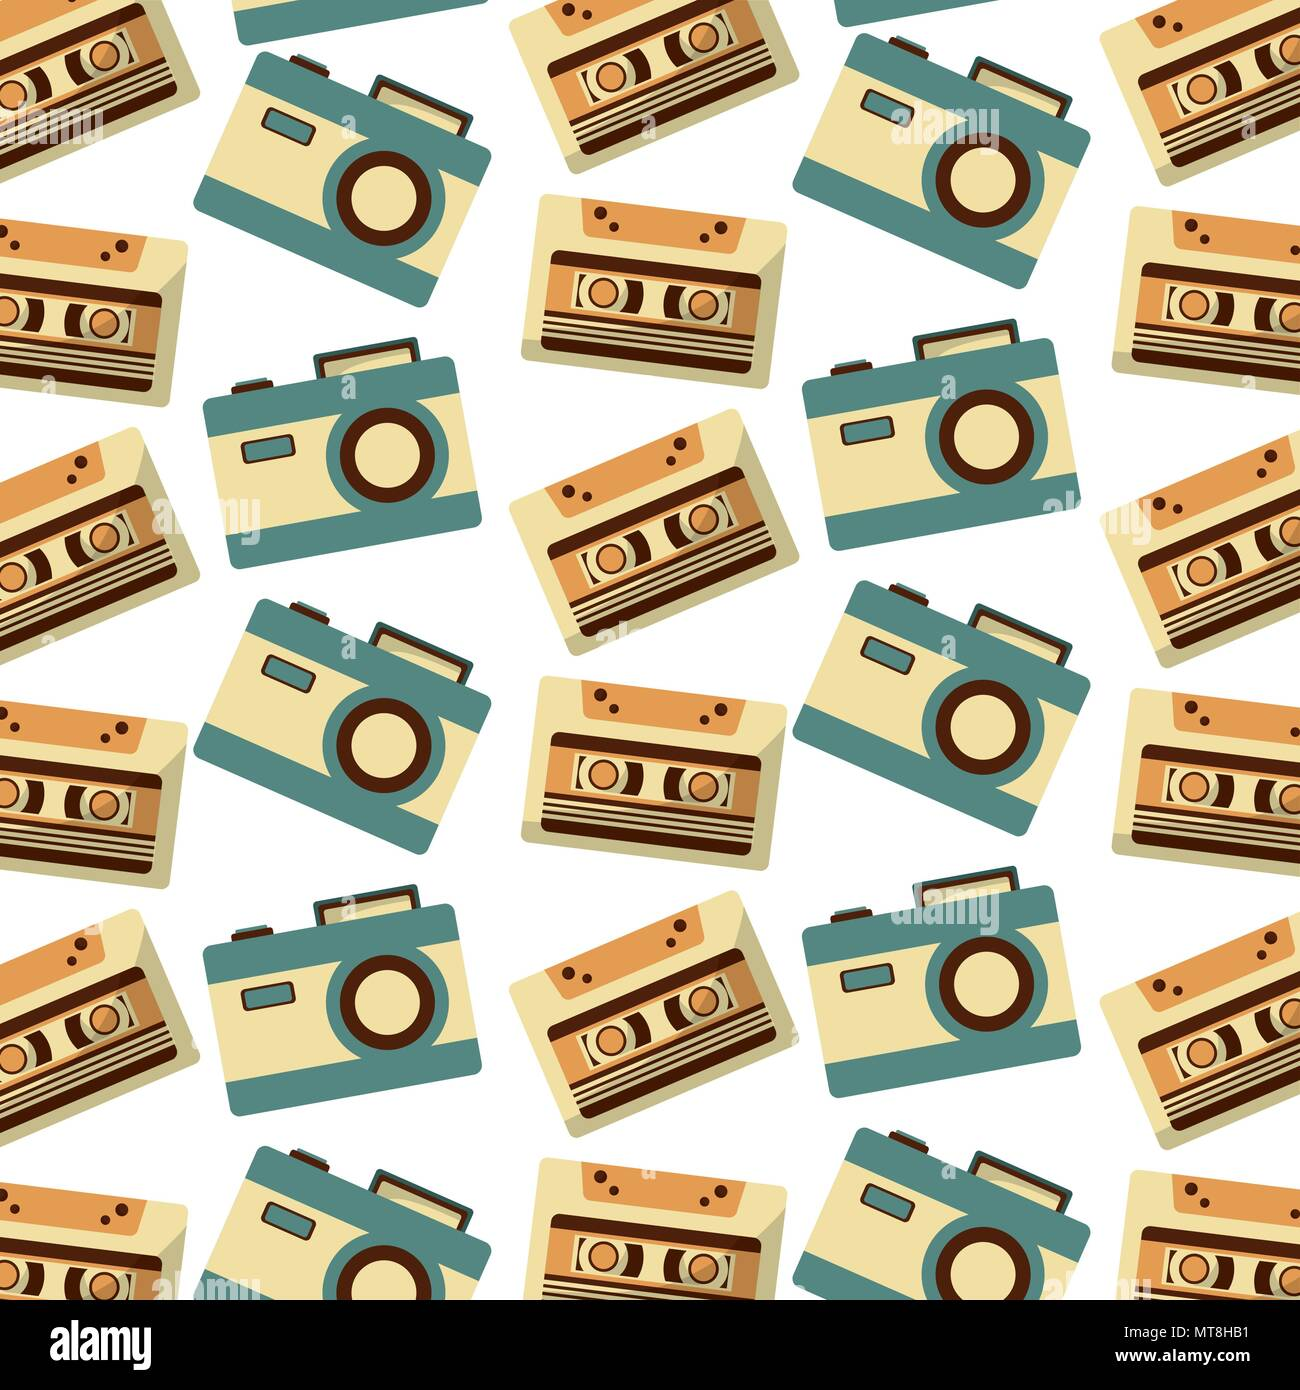 70s Wallpaper Stock Vector Images Alamy Electric Guitar Plan Diagram Drawing Wallpapers Music Cassette And Camera Photographic Retro Pattern